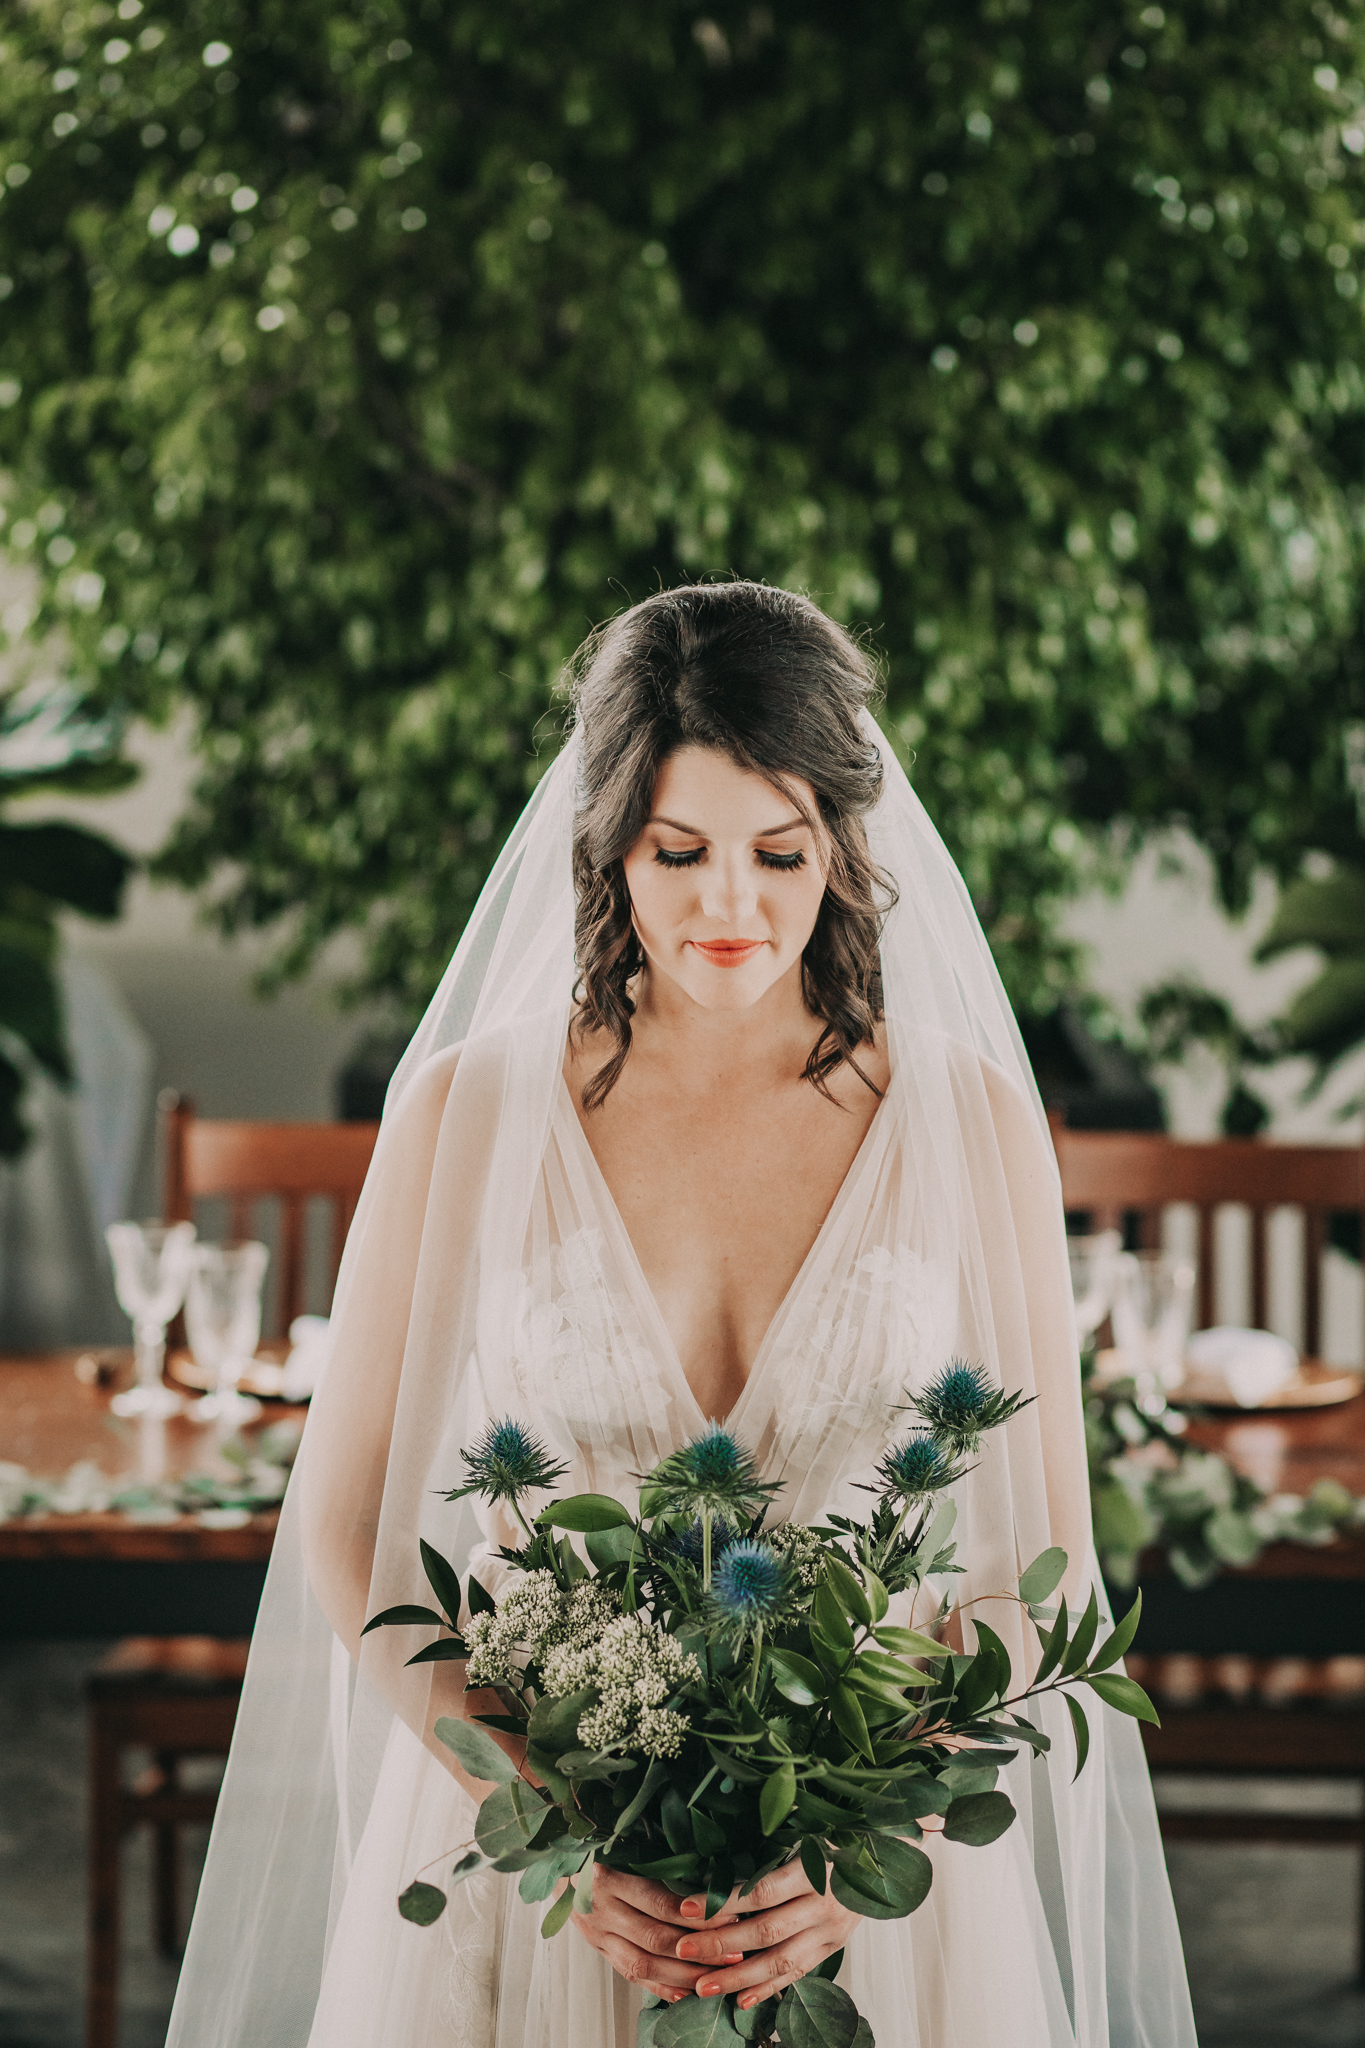 Blue thistle wedding bouquet: Shades of Green Legacy Styled Shoot by Music City Events and Billie-Shaye Style featured on Nashville Bride Guide